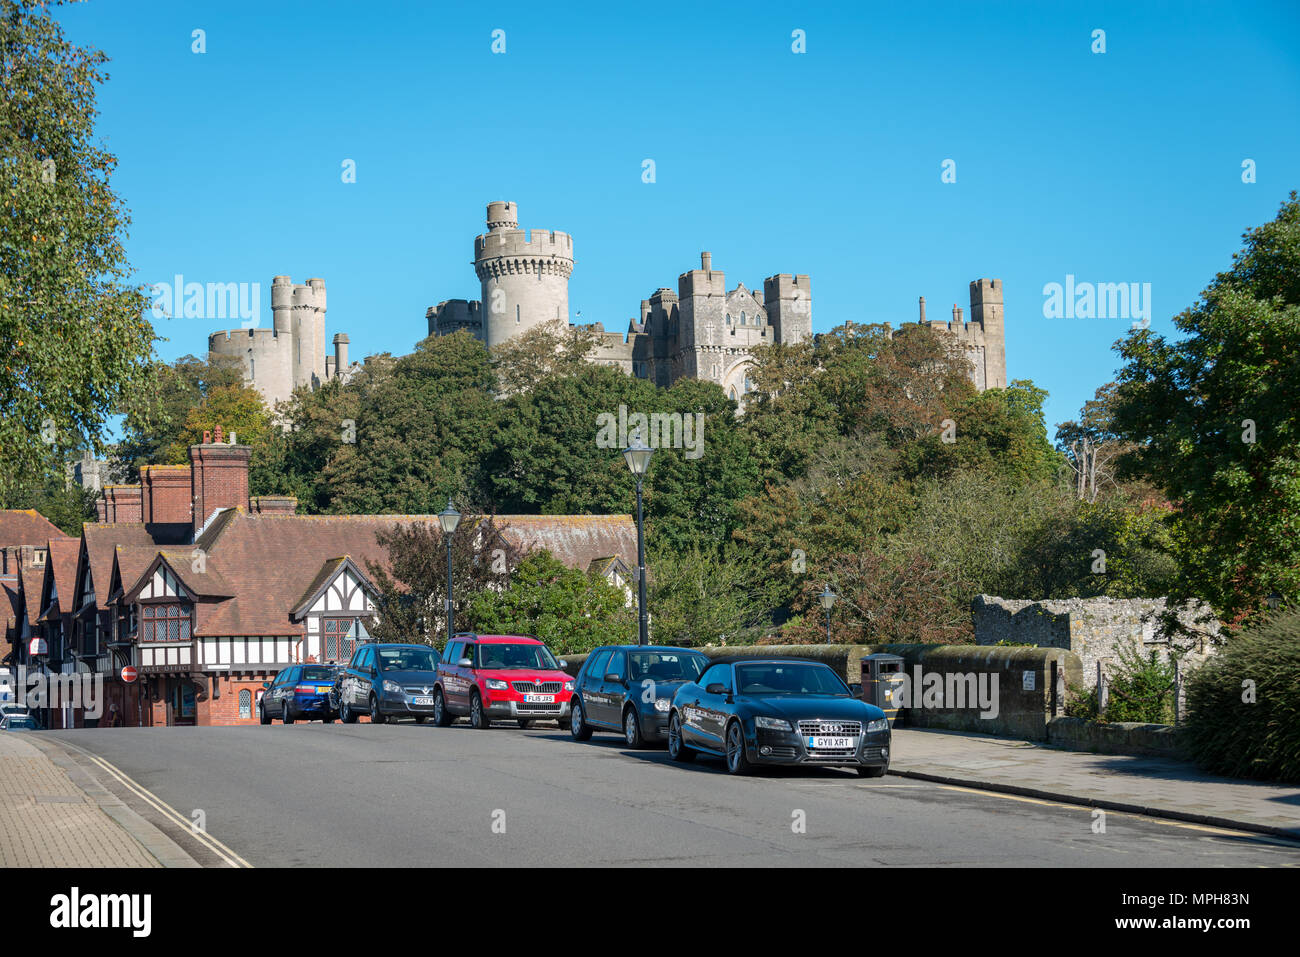 Arundel Town Castle. Cars parked along a road near to Arundel Castle in Arundel, West Sussex, UK. Stock Photo